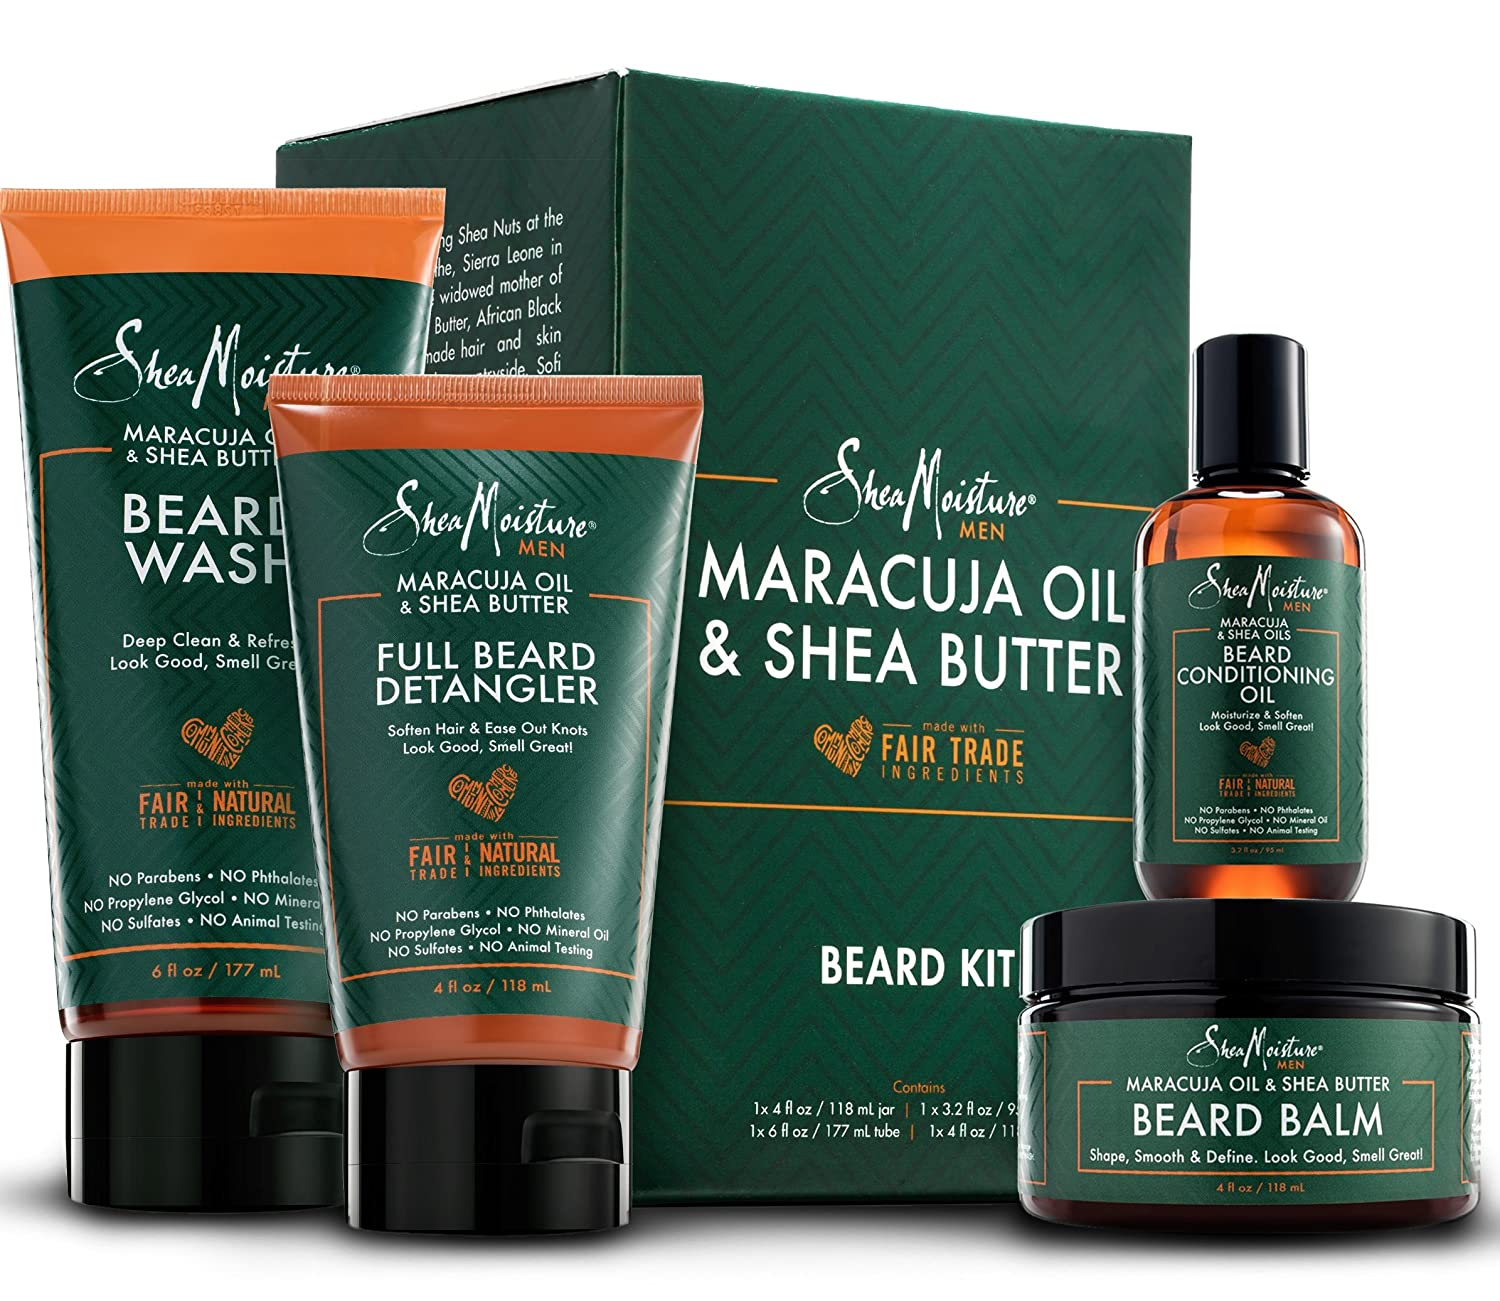 Shea Moisture Complete Beard Kit, best gift for boyfriend